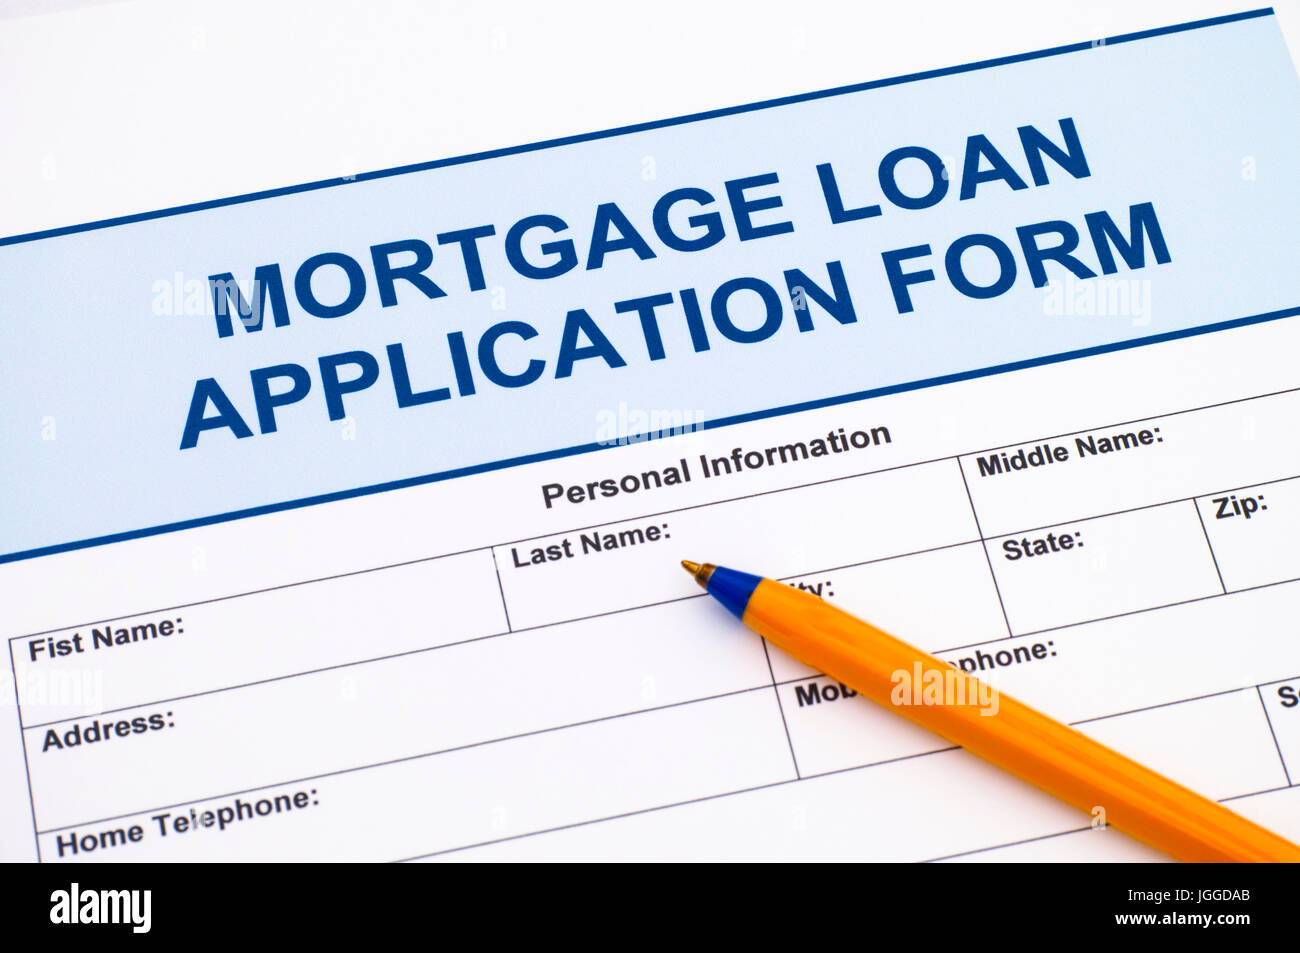 Mortgage Loan application form with ballpoint pen - Stock Image